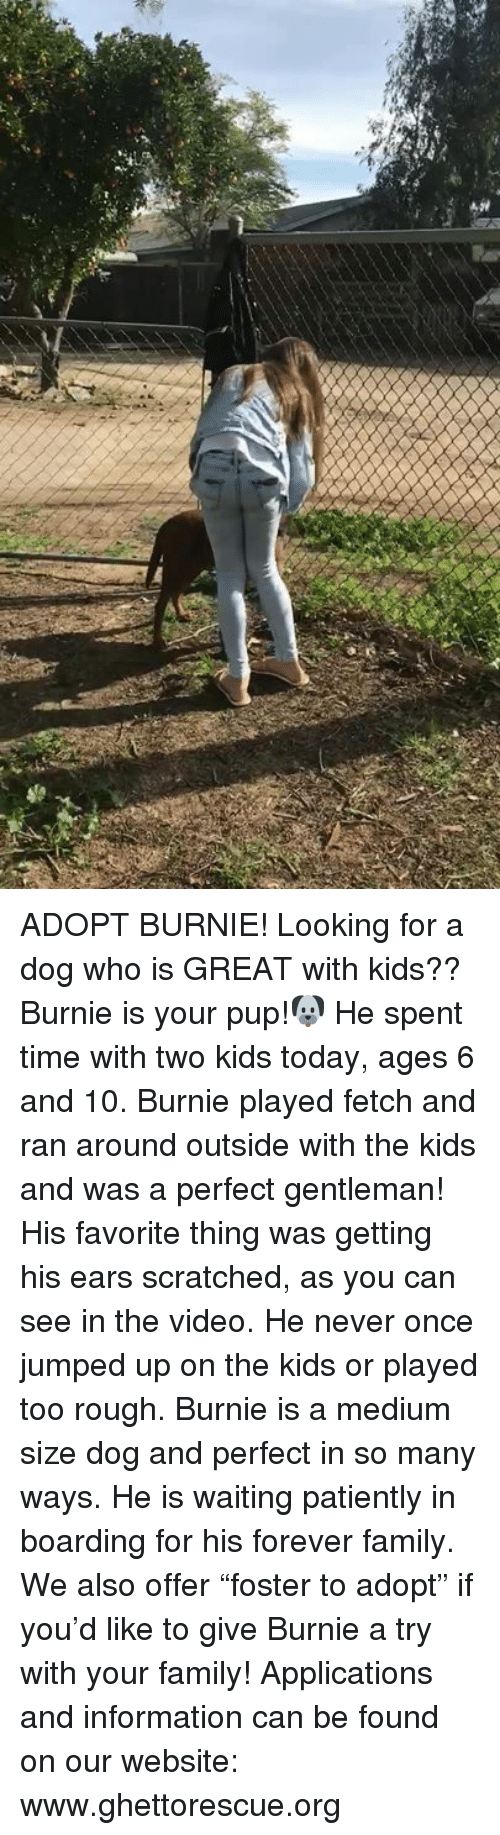 """Family, Memes, and Forever: ADOPT BURNIE! Looking for a dog who is GREAT with kids?? Burnie is your pup!🐶 He spent time with two kids today, ages 6 and 10.  Burnie played fetch and ran around outside with the kids and was a perfect gentleman! His favorite thing was getting his ears scratched, as you can see in the video. He never once jumped up on the kids or played too rough. Burnie is a medium size dog and perfect in so many ways. He is waiting patiently in boarding for his forever family. We also offer """"foster to adopt"""" if you'd like to give Burnie a try with your family! Applications and information can be found on our website:  www.ghettorescue.org"""